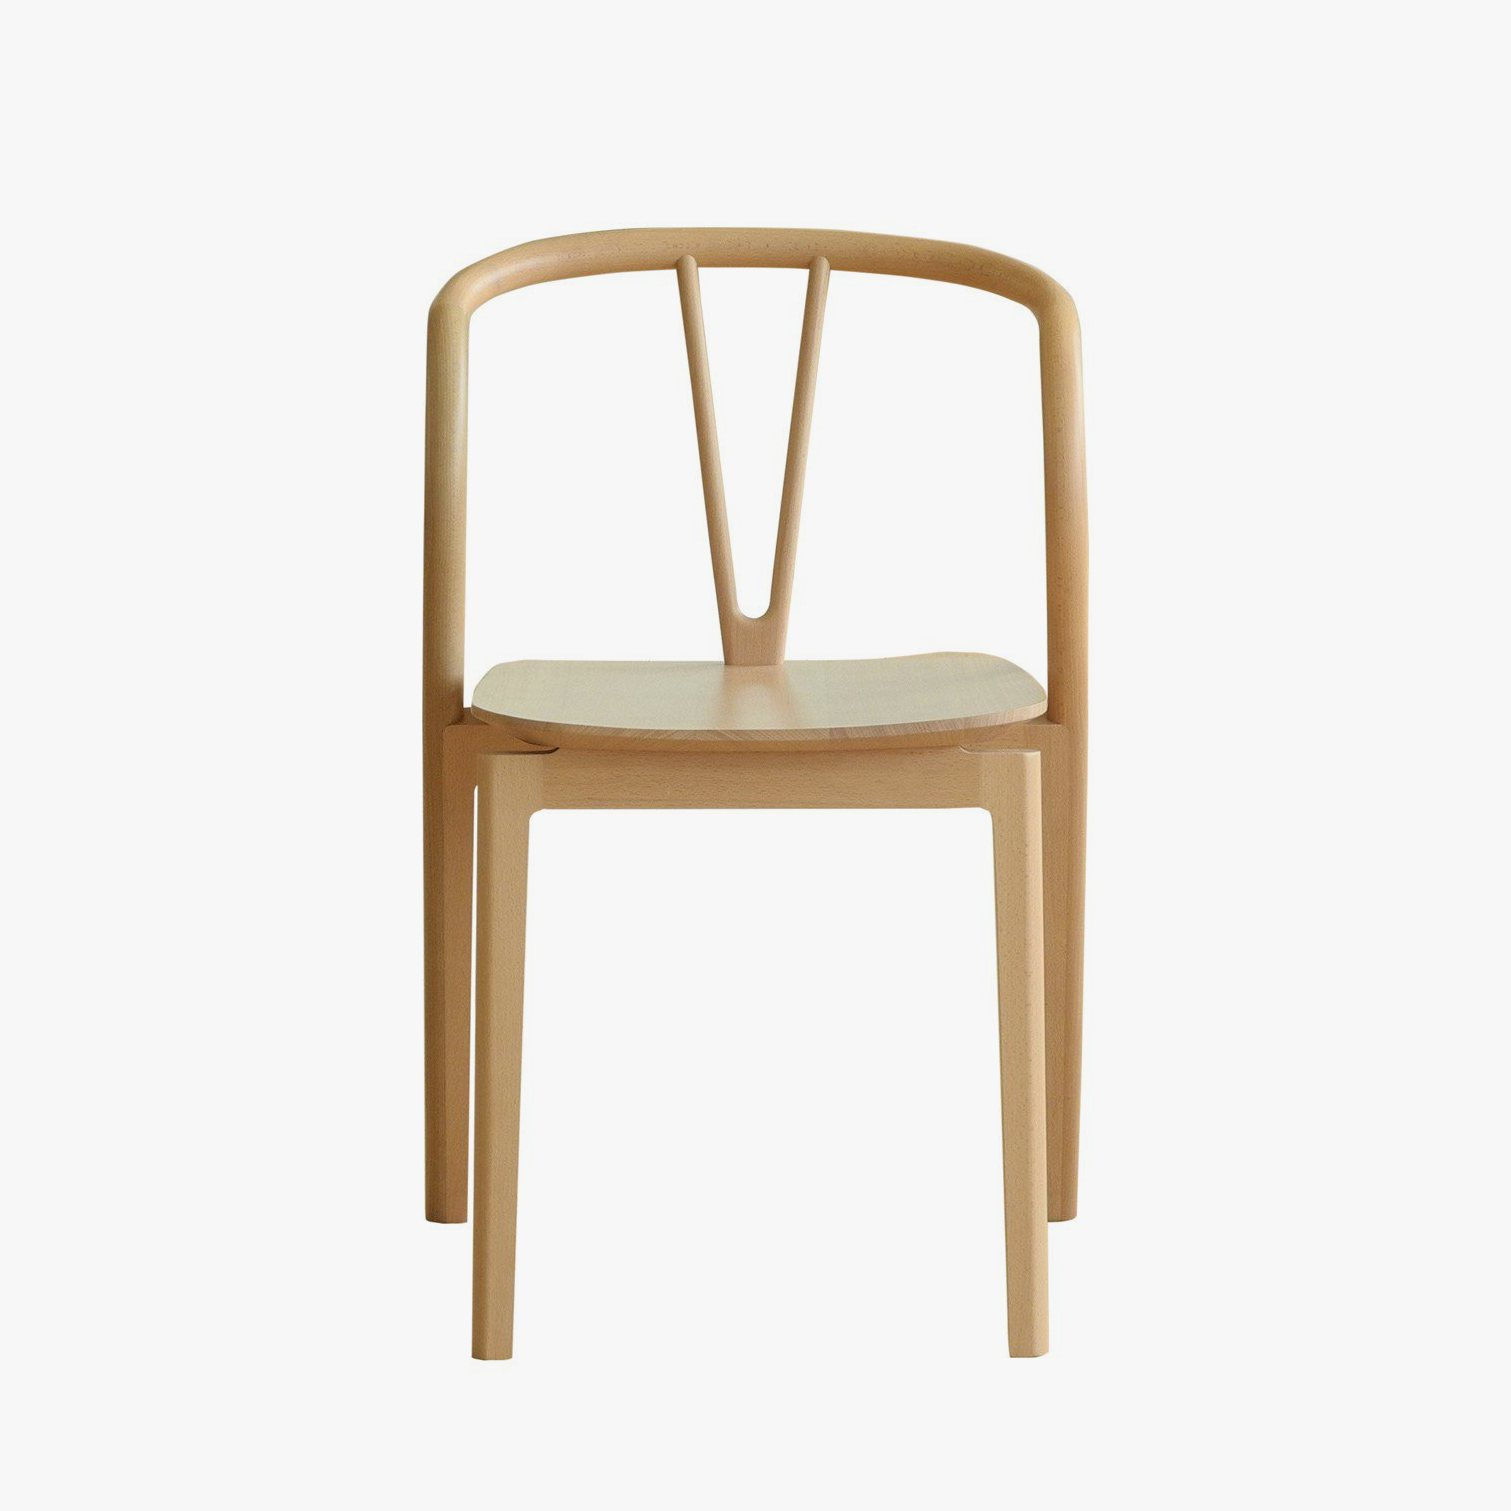 chair design studio all steel chairs flow by tna for ercol up interiors